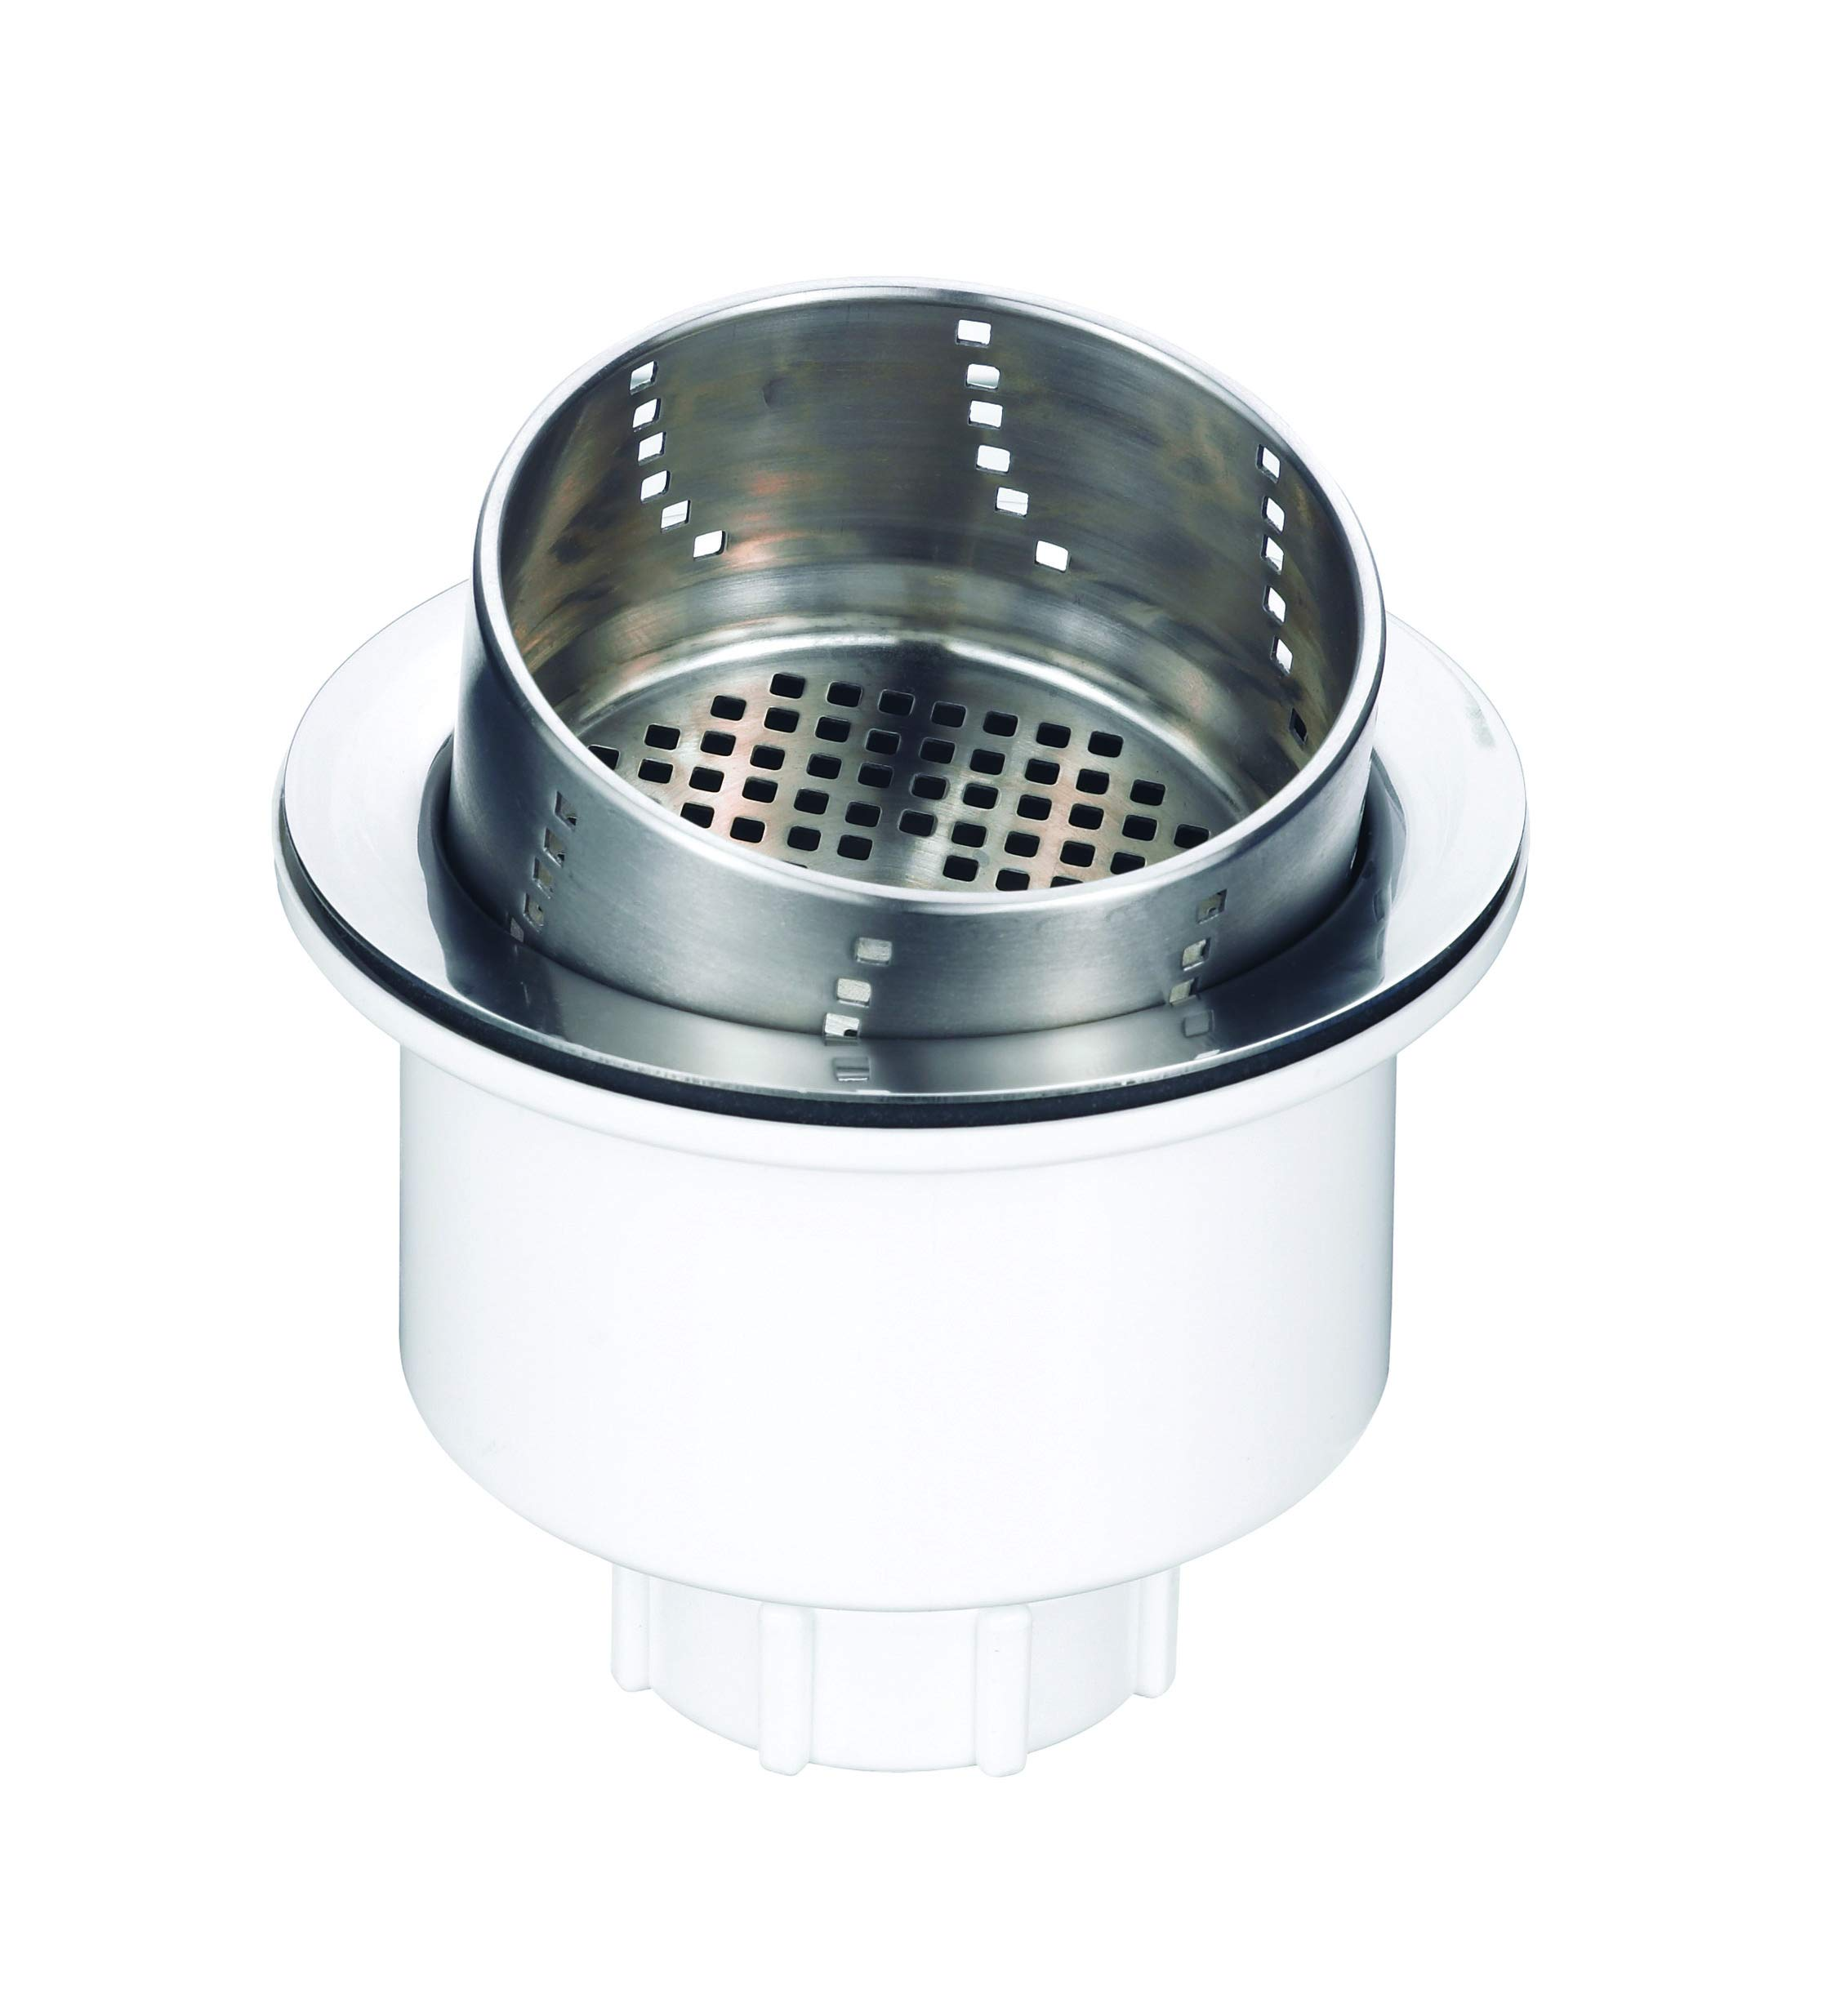 BLANCO, Stainless 441231 3-in-1 Kitchen Drain Basket Strainer